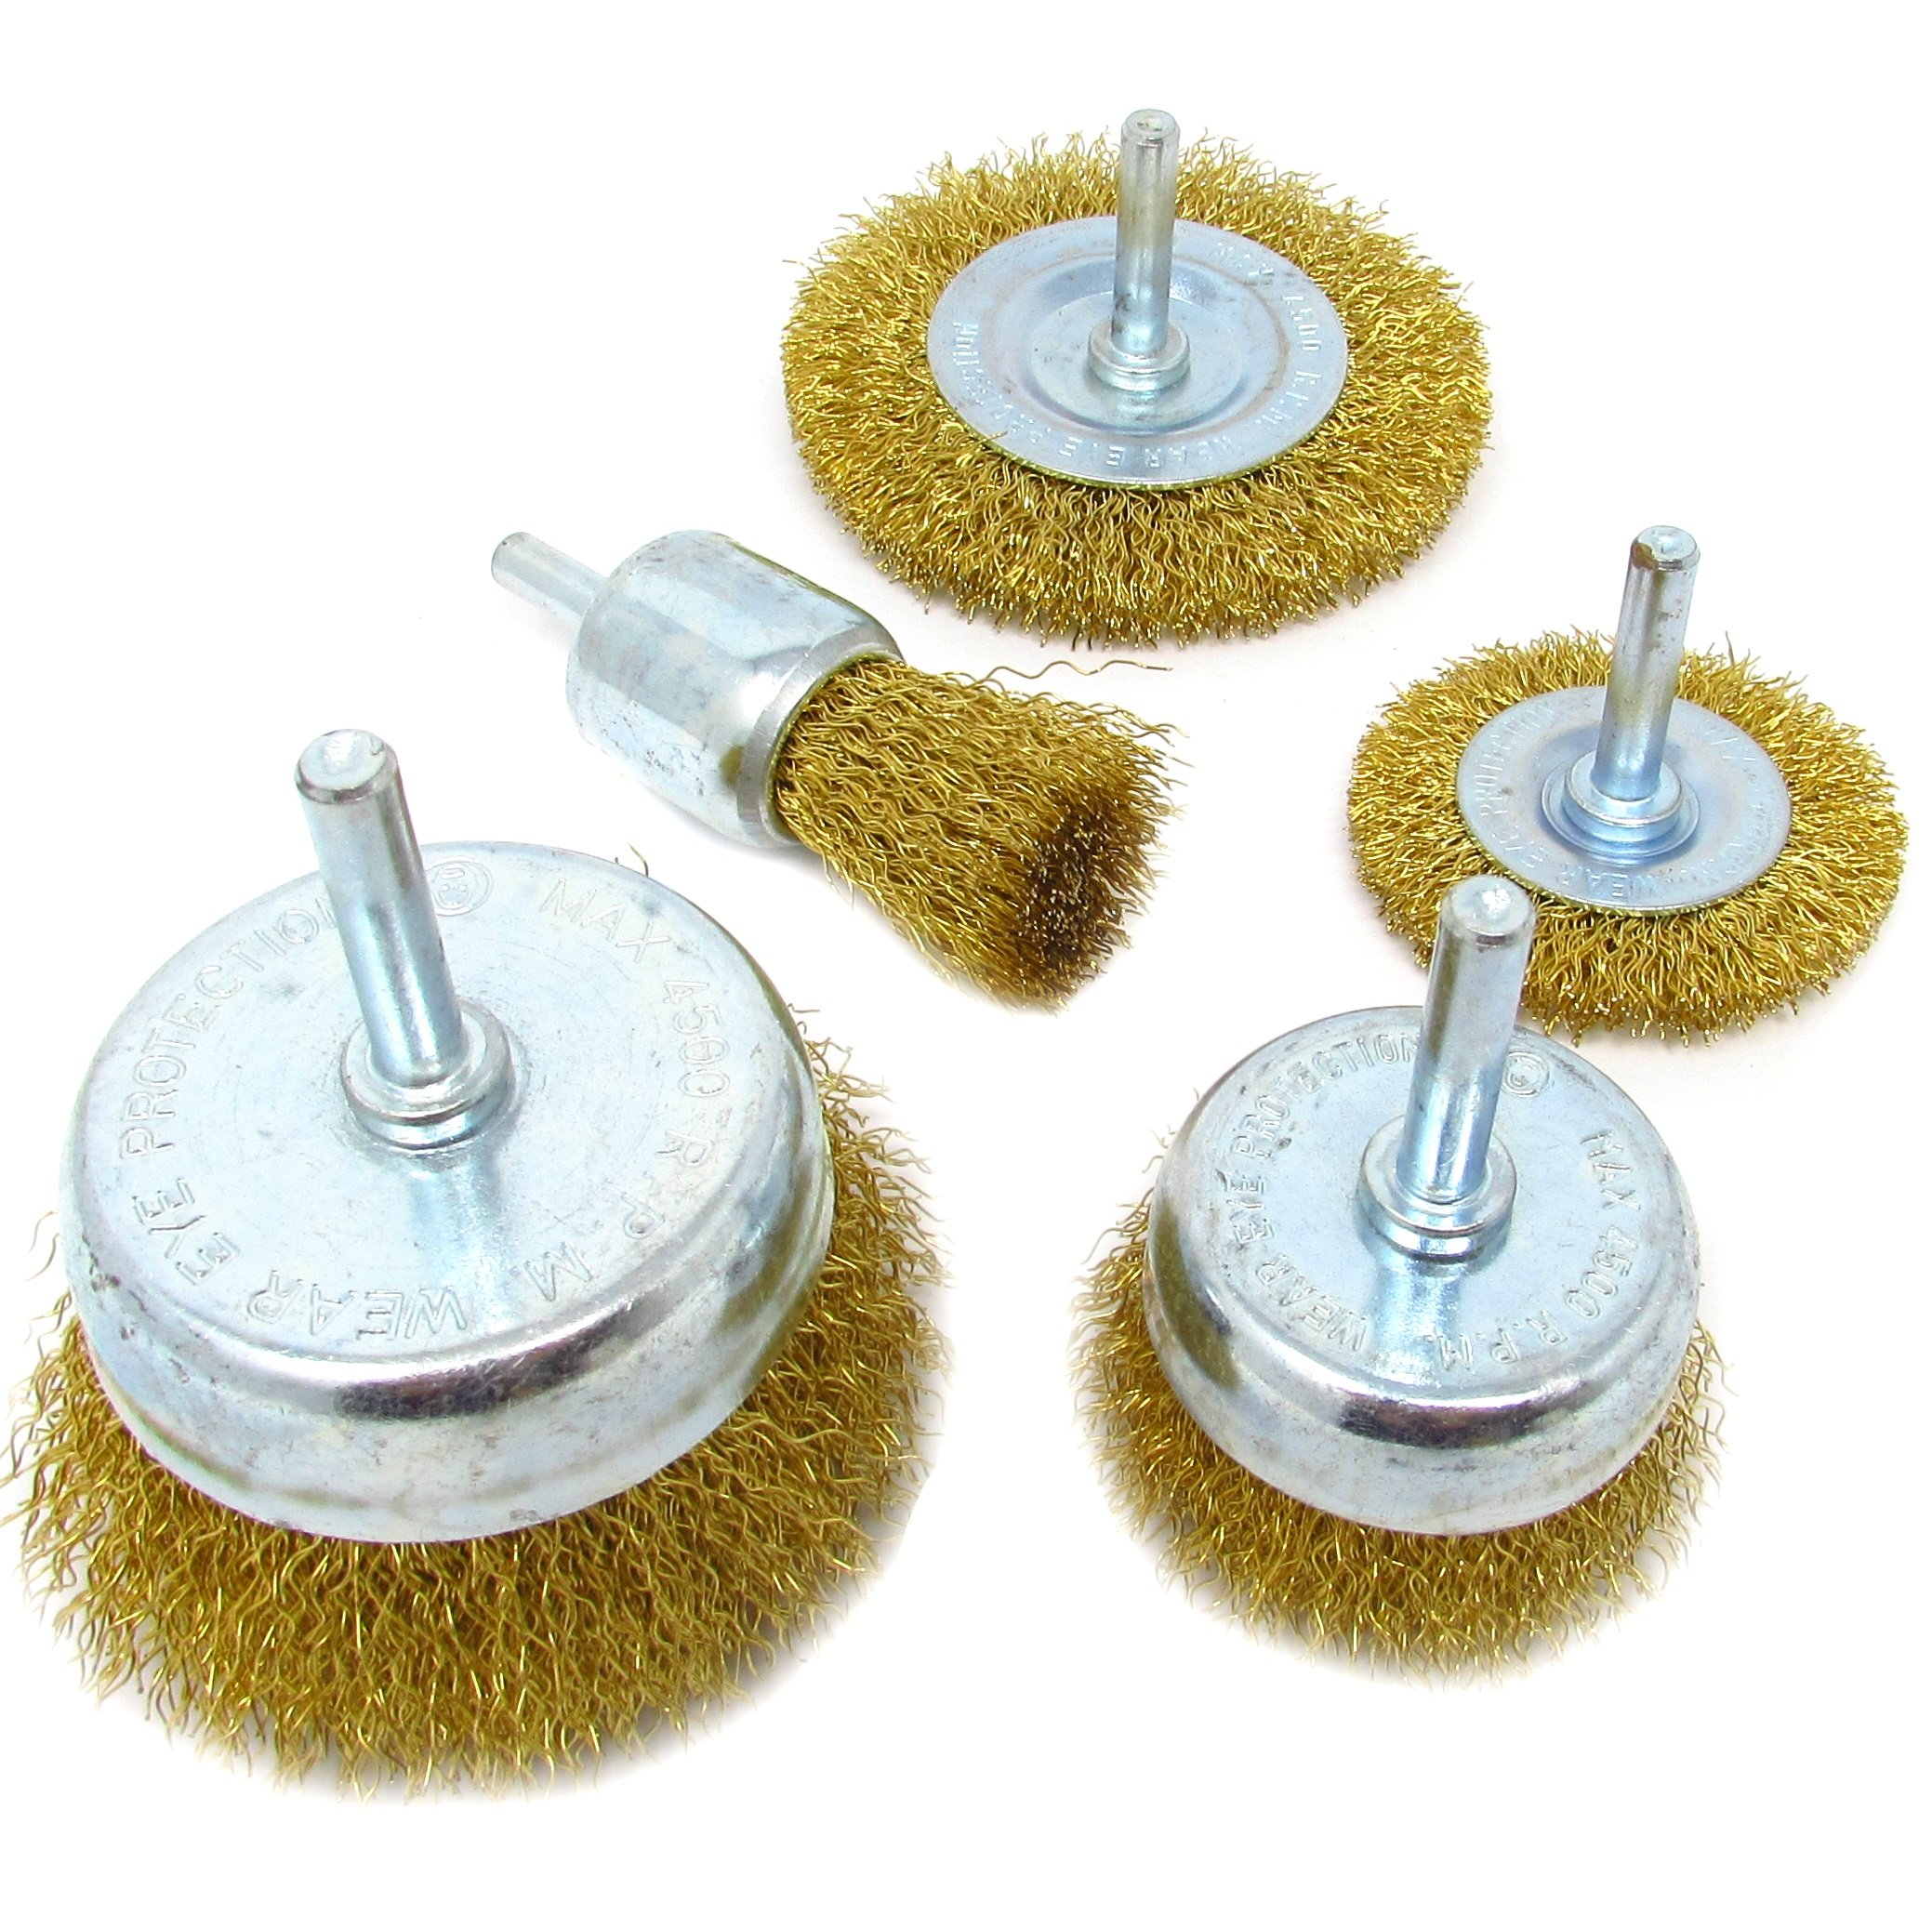 5pc Brass Coated Wire Brush Wheel & Cup Set